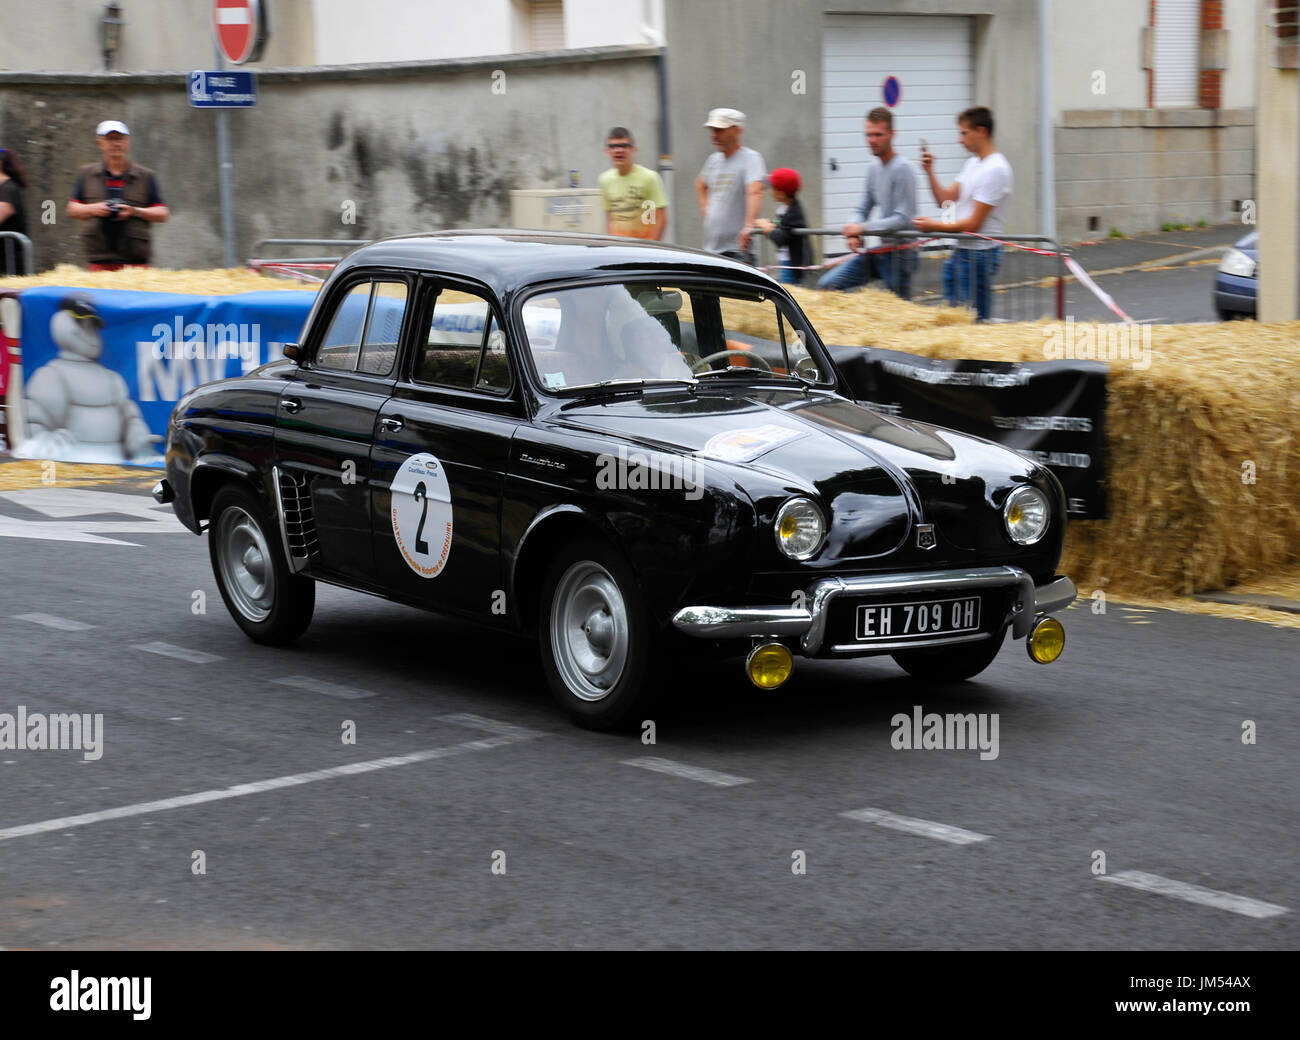 renault dauphine stock photos renault dauphine stock images alamy. Black Bedroom Furniture Sets. Home Design Ideas